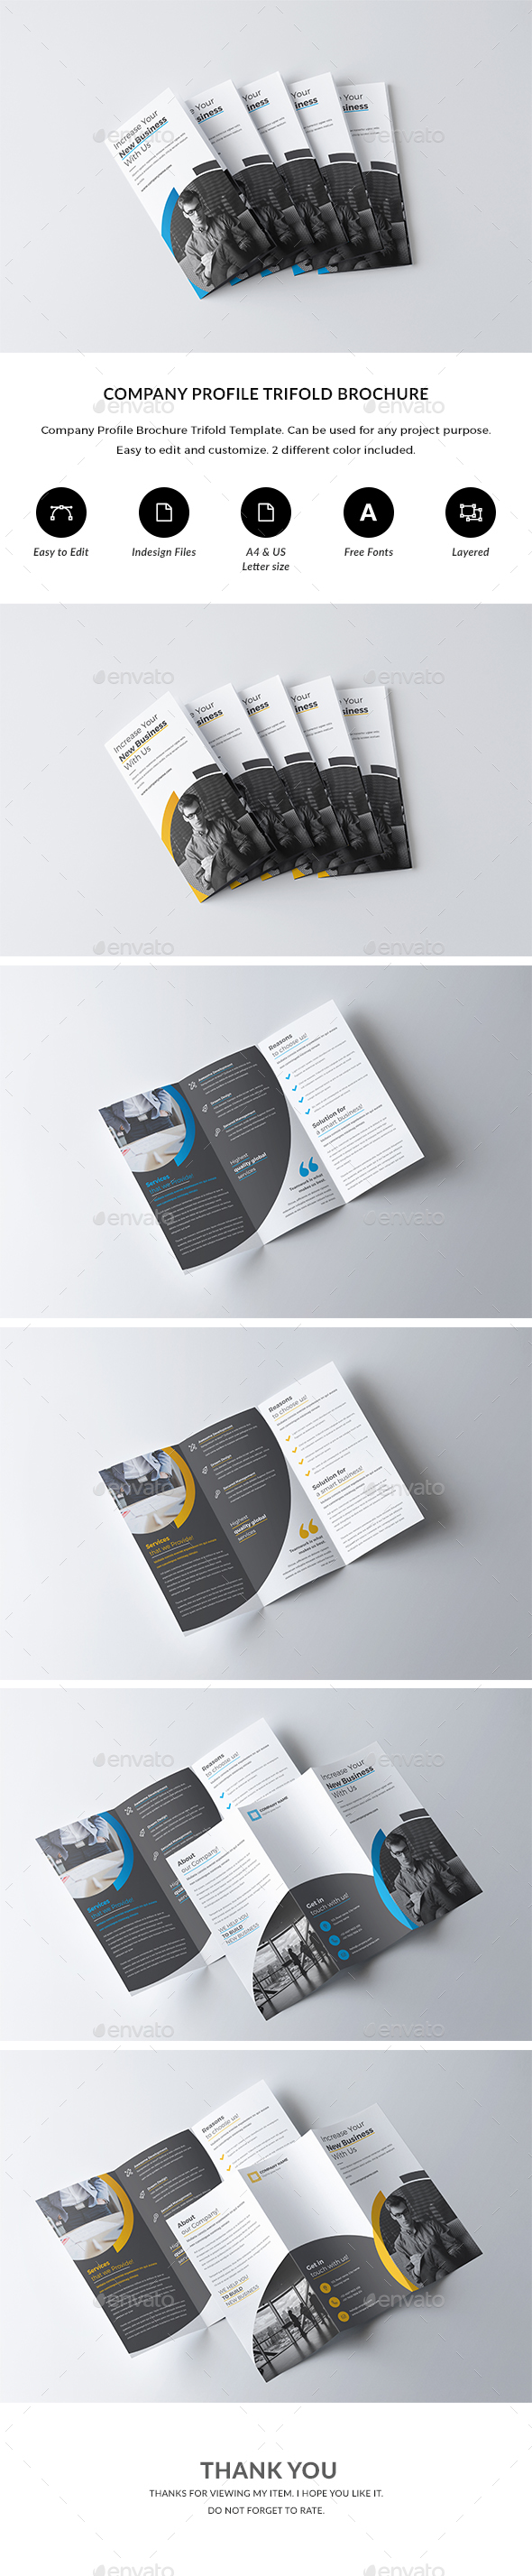 Trifold Brochure Template By Nashoaib Graphicriver